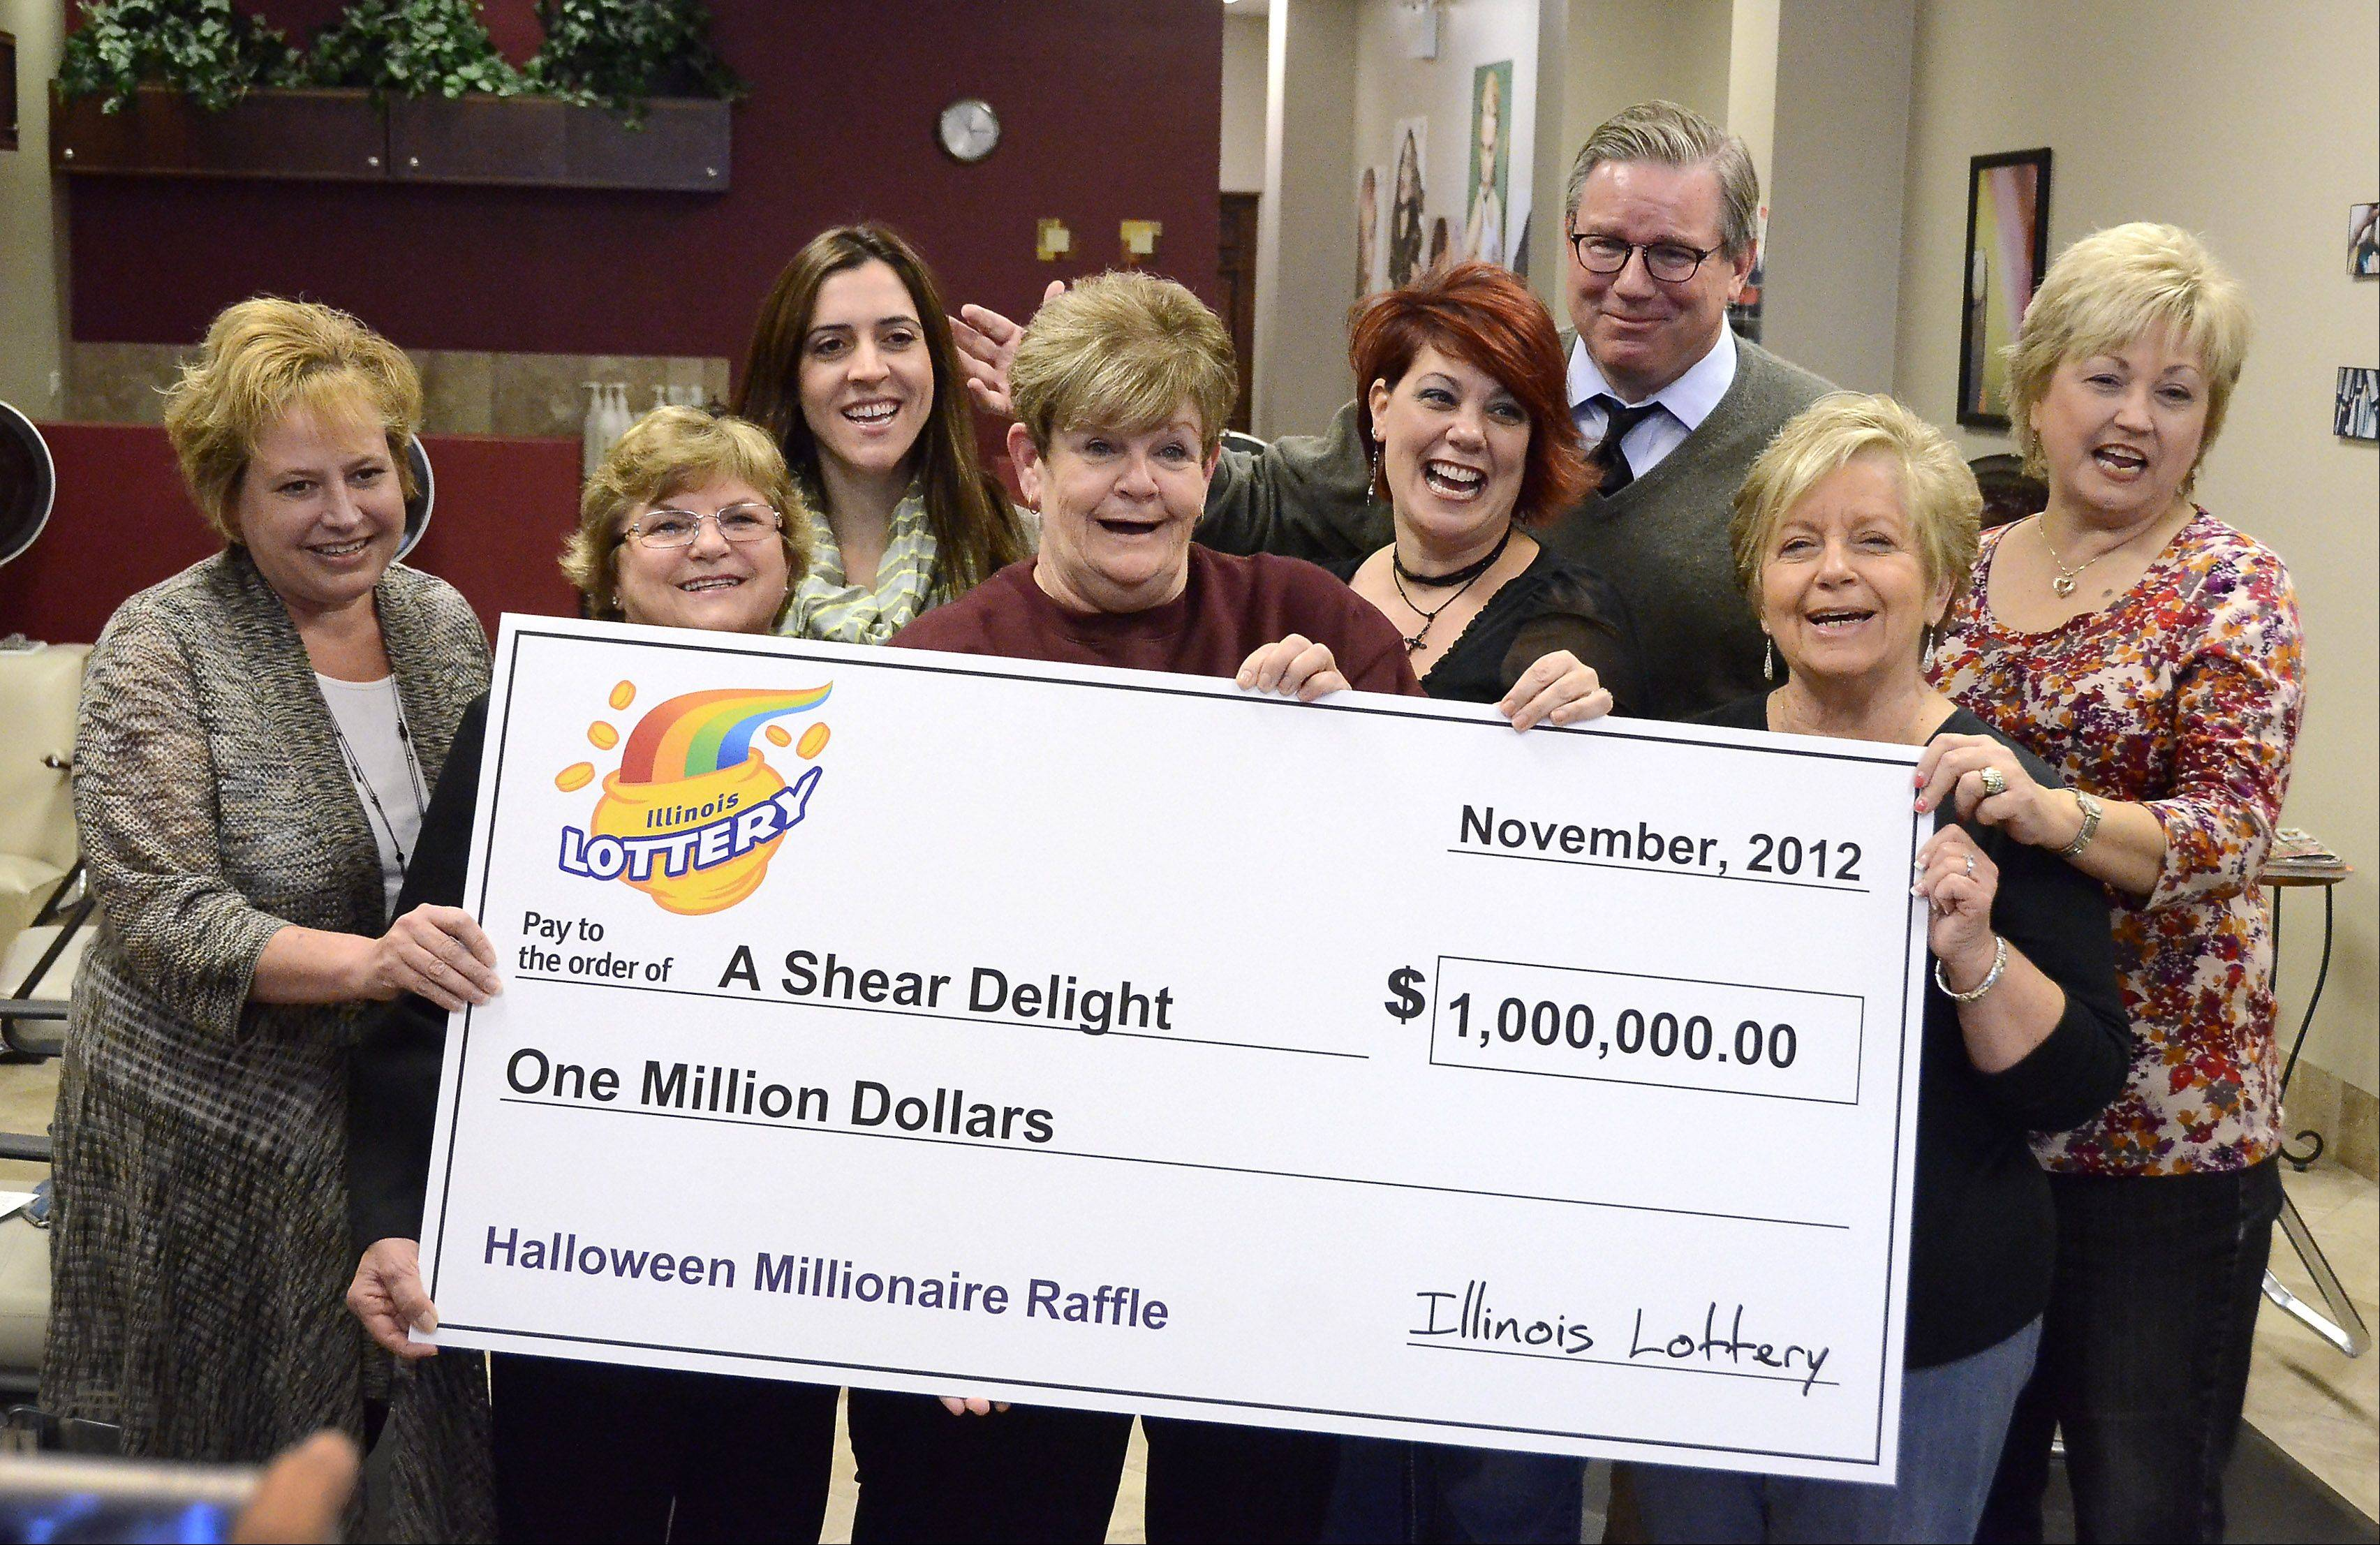 Illinois Lottery Superintendent Michael Jones presents a $1 million check to hair stylists at A Shear Delight in Hanover Park. Among the nine winners who pool their money every week are, from left, Barb Eberwein, Gerlinde Hruska, Nicole Murray, Lorraine Smith, salon owner Donna Carman, Sharon Melbourn and Donna Thomas.